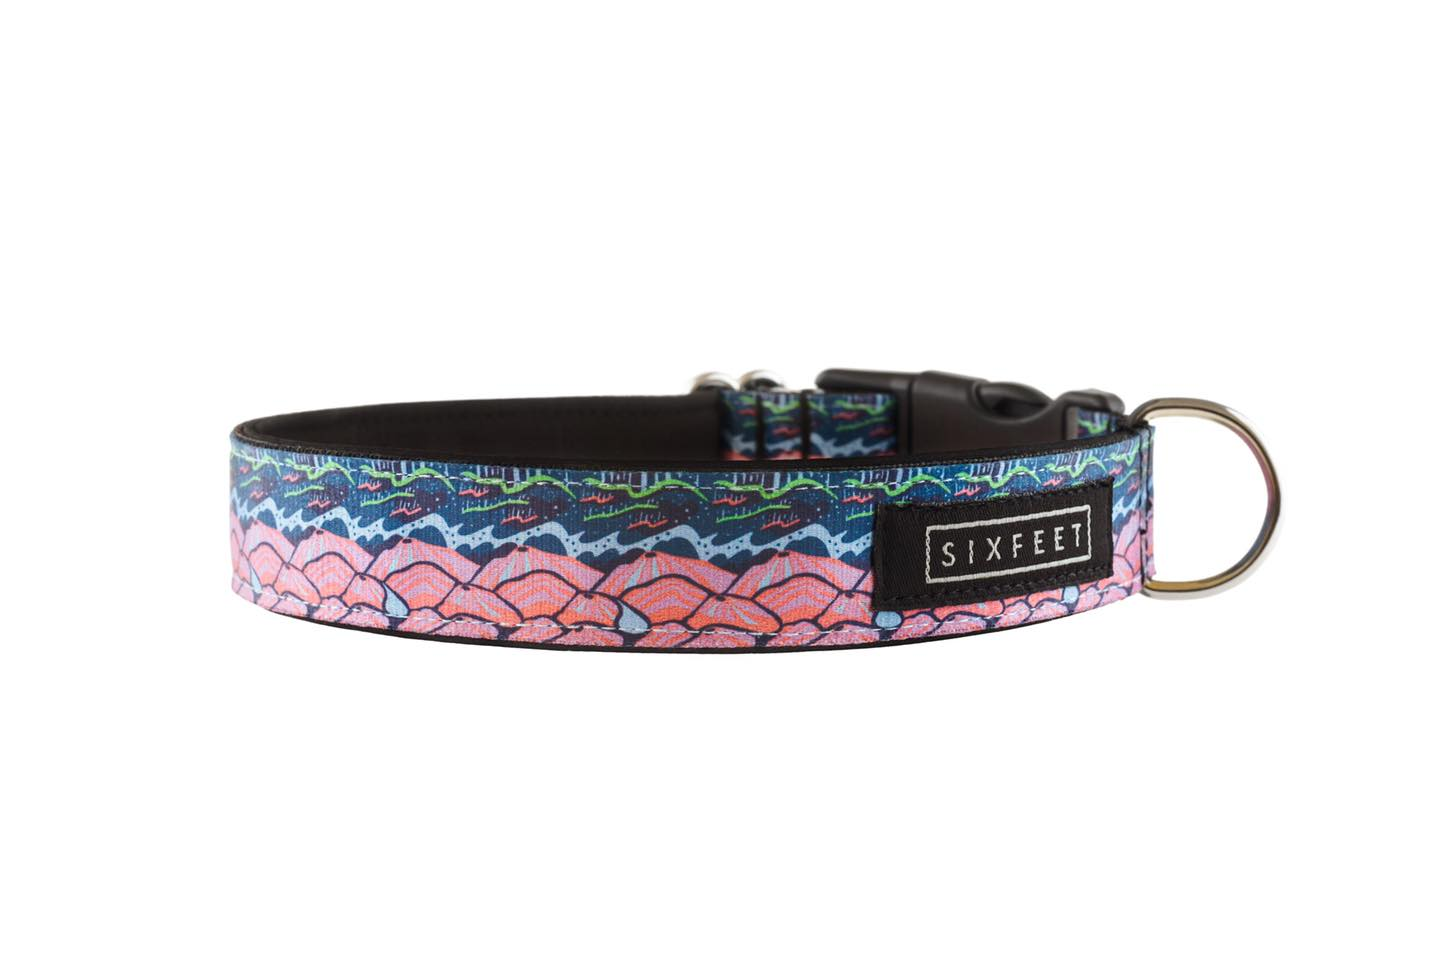 Iceland Trail Buckle Collar - 20mm wide